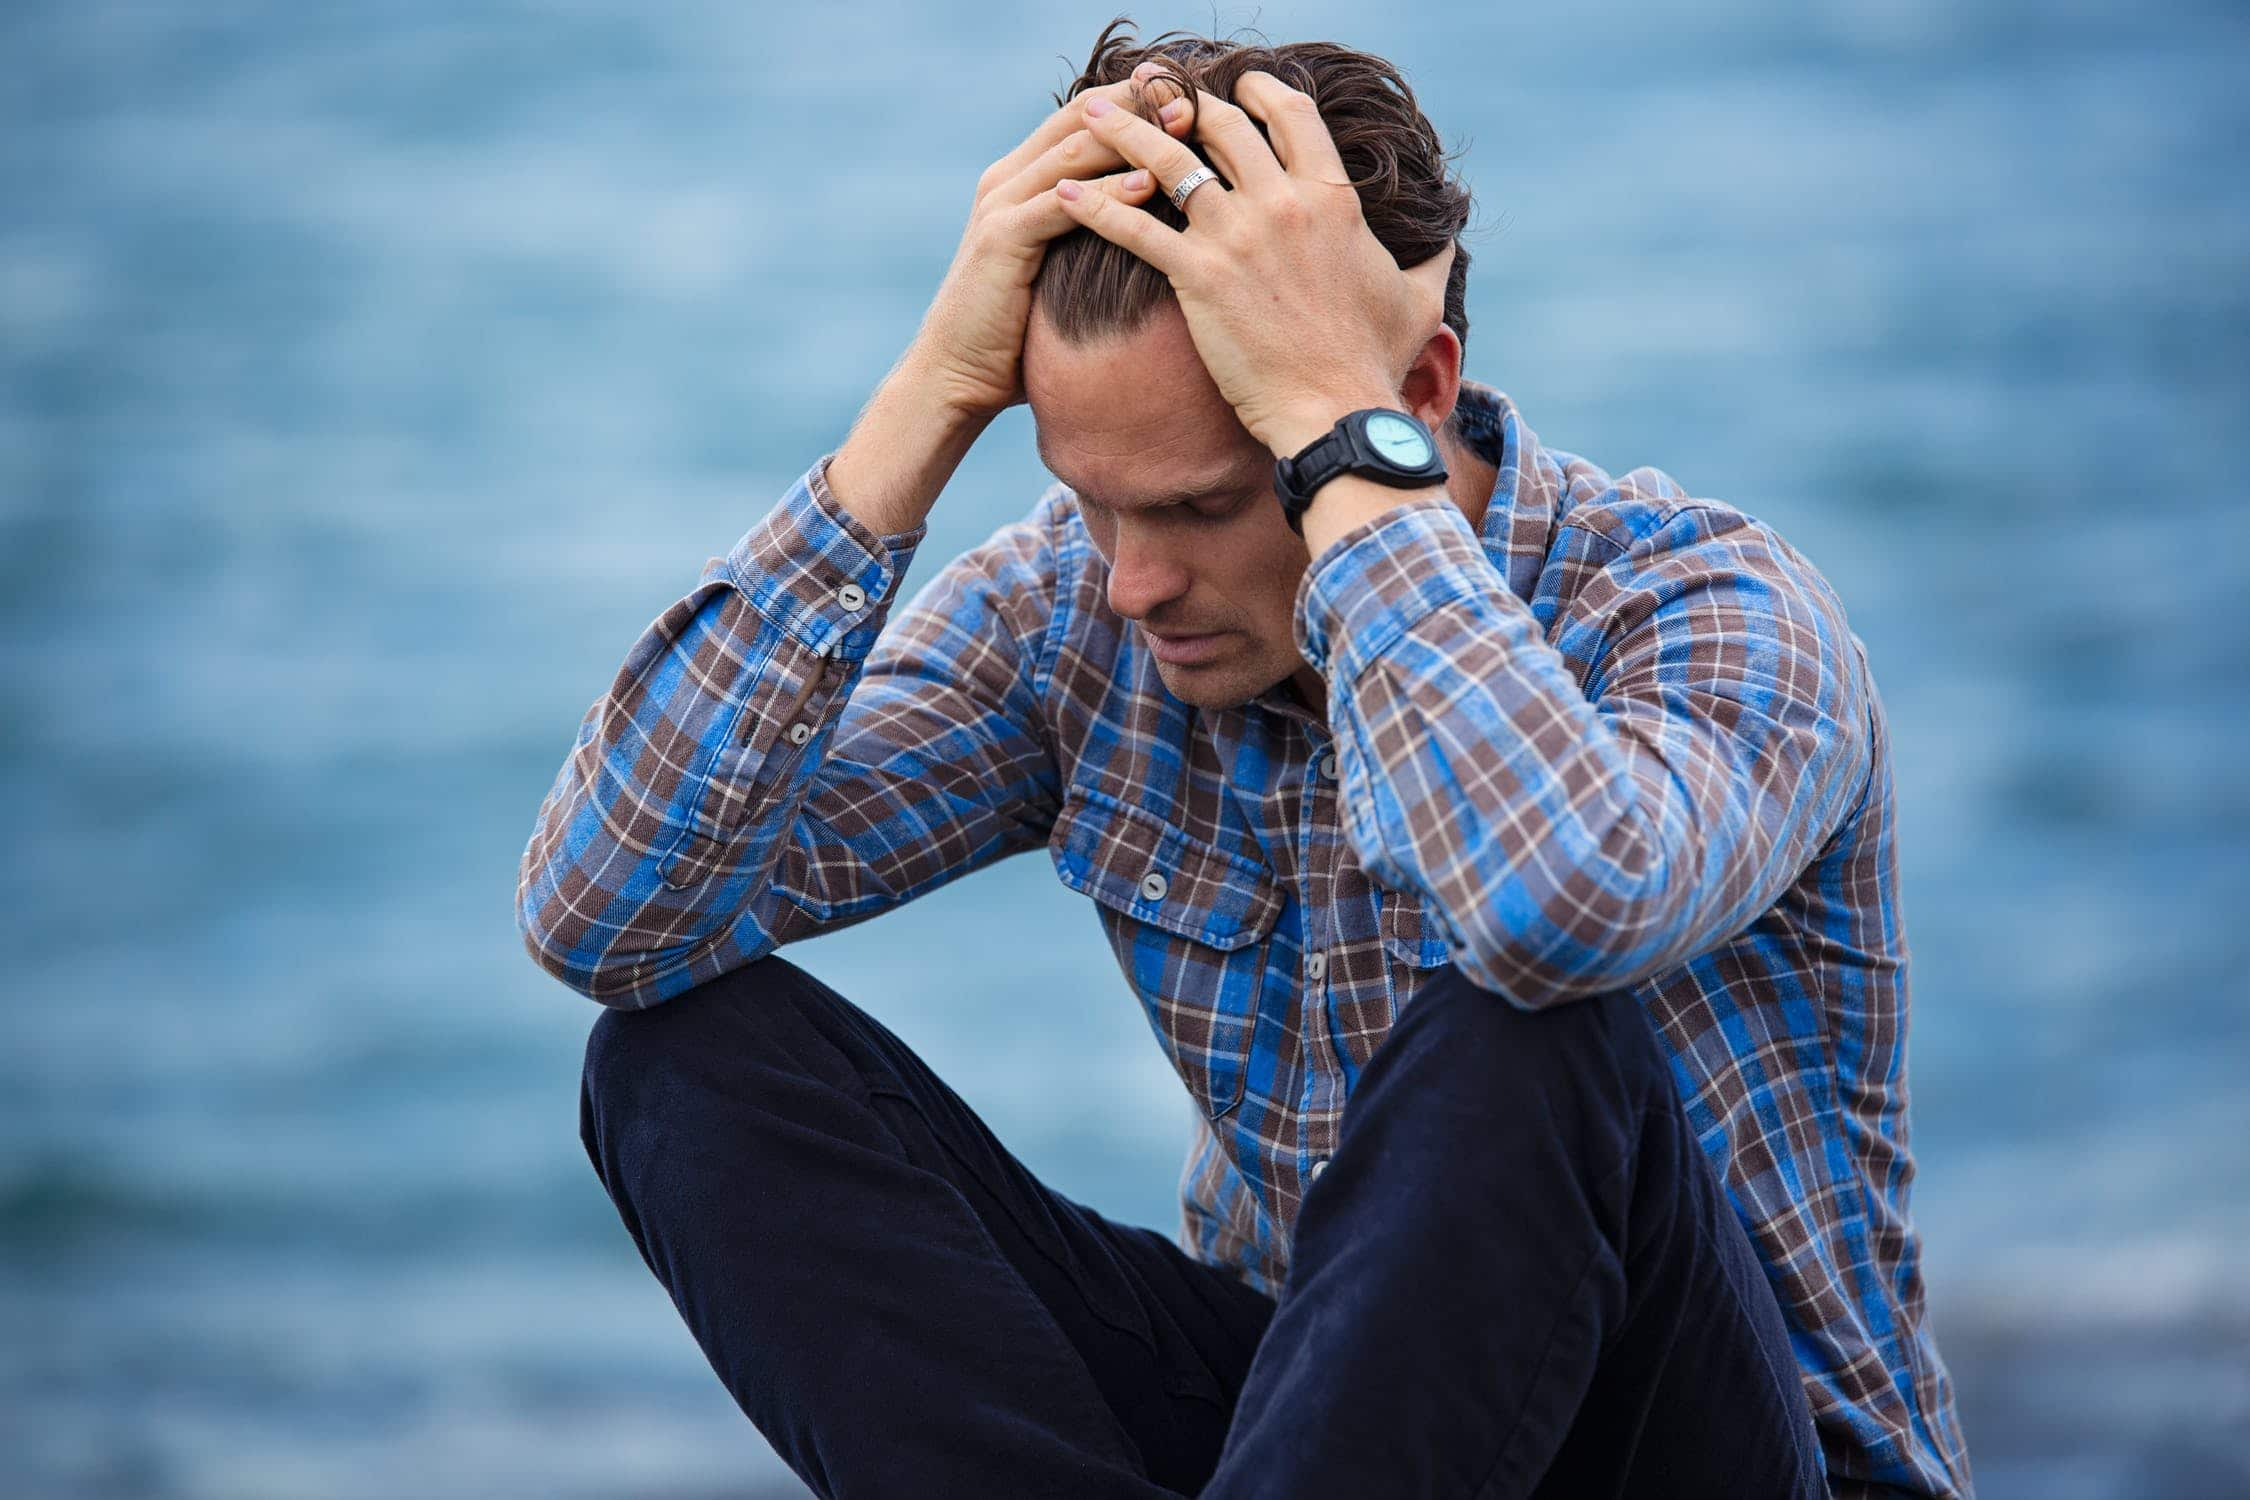 5 Typical Career Mistakes That Will Sabotage Your Future